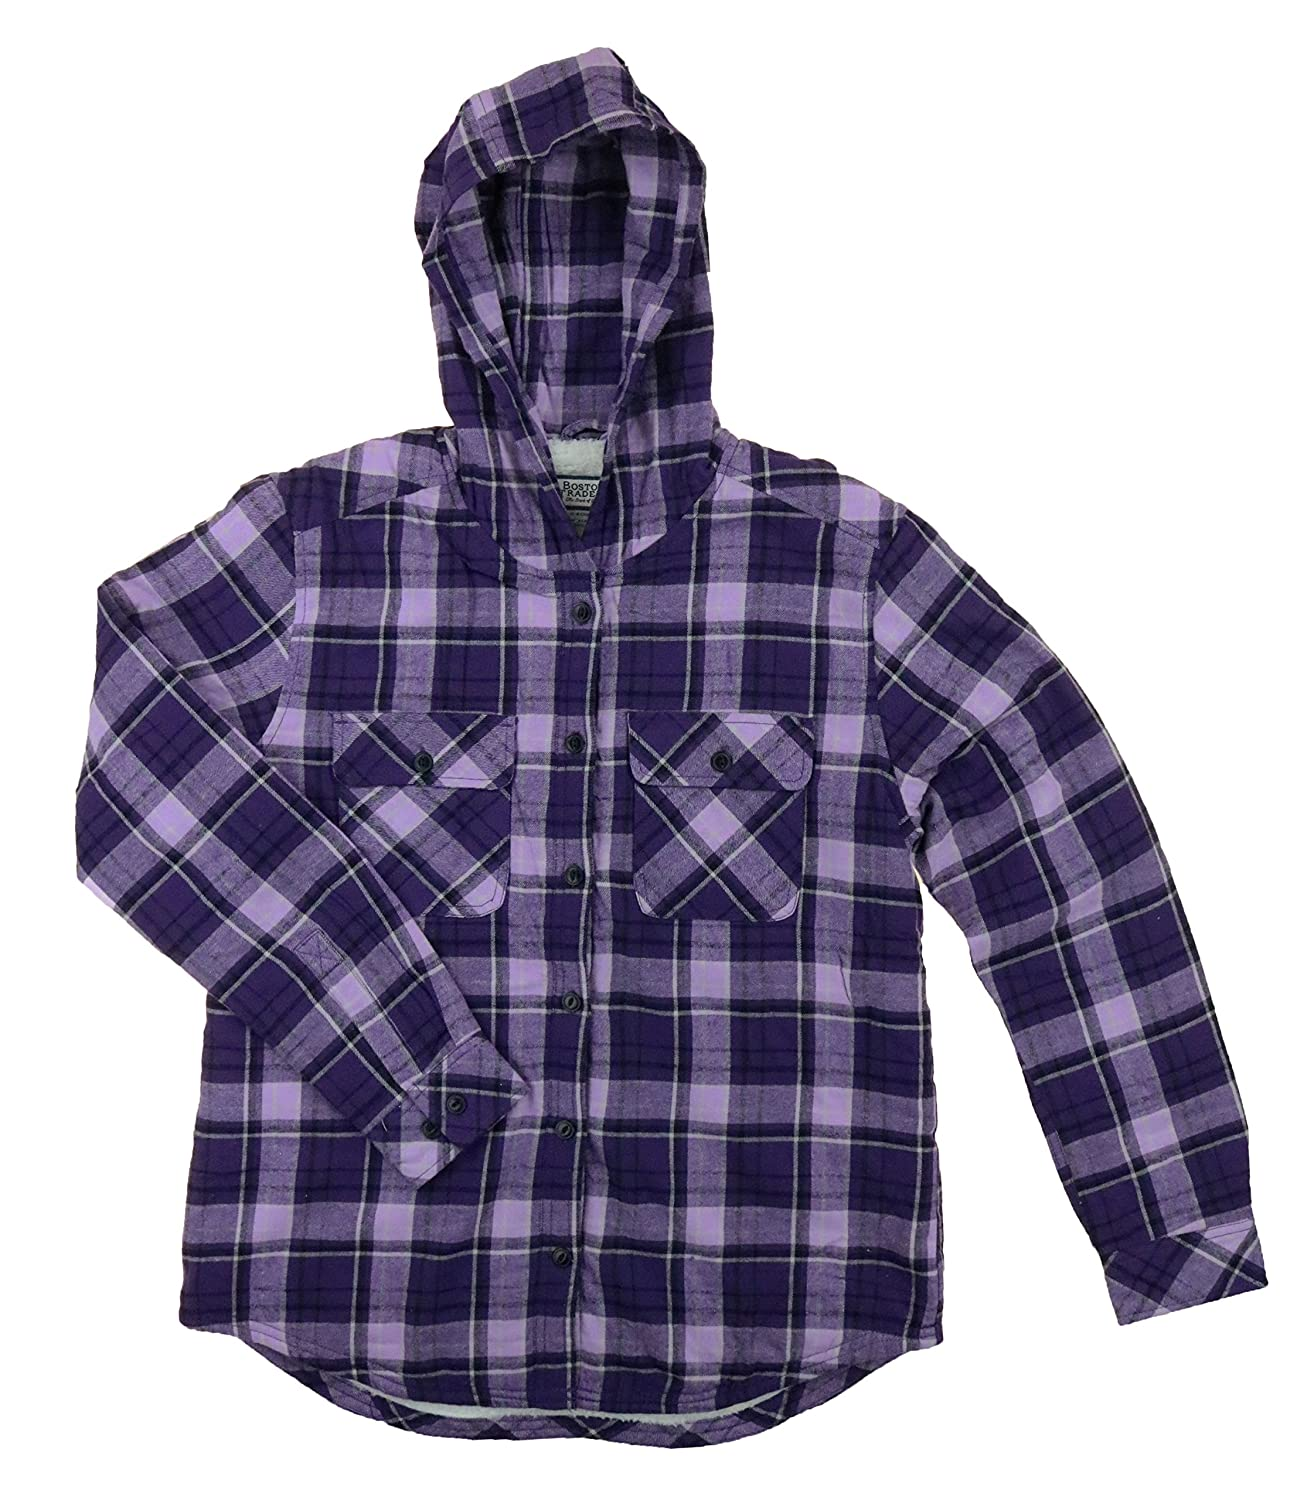 Boston Traders Ladies' Sherpa Lined Hooded Flannel Top Black & White Plaid